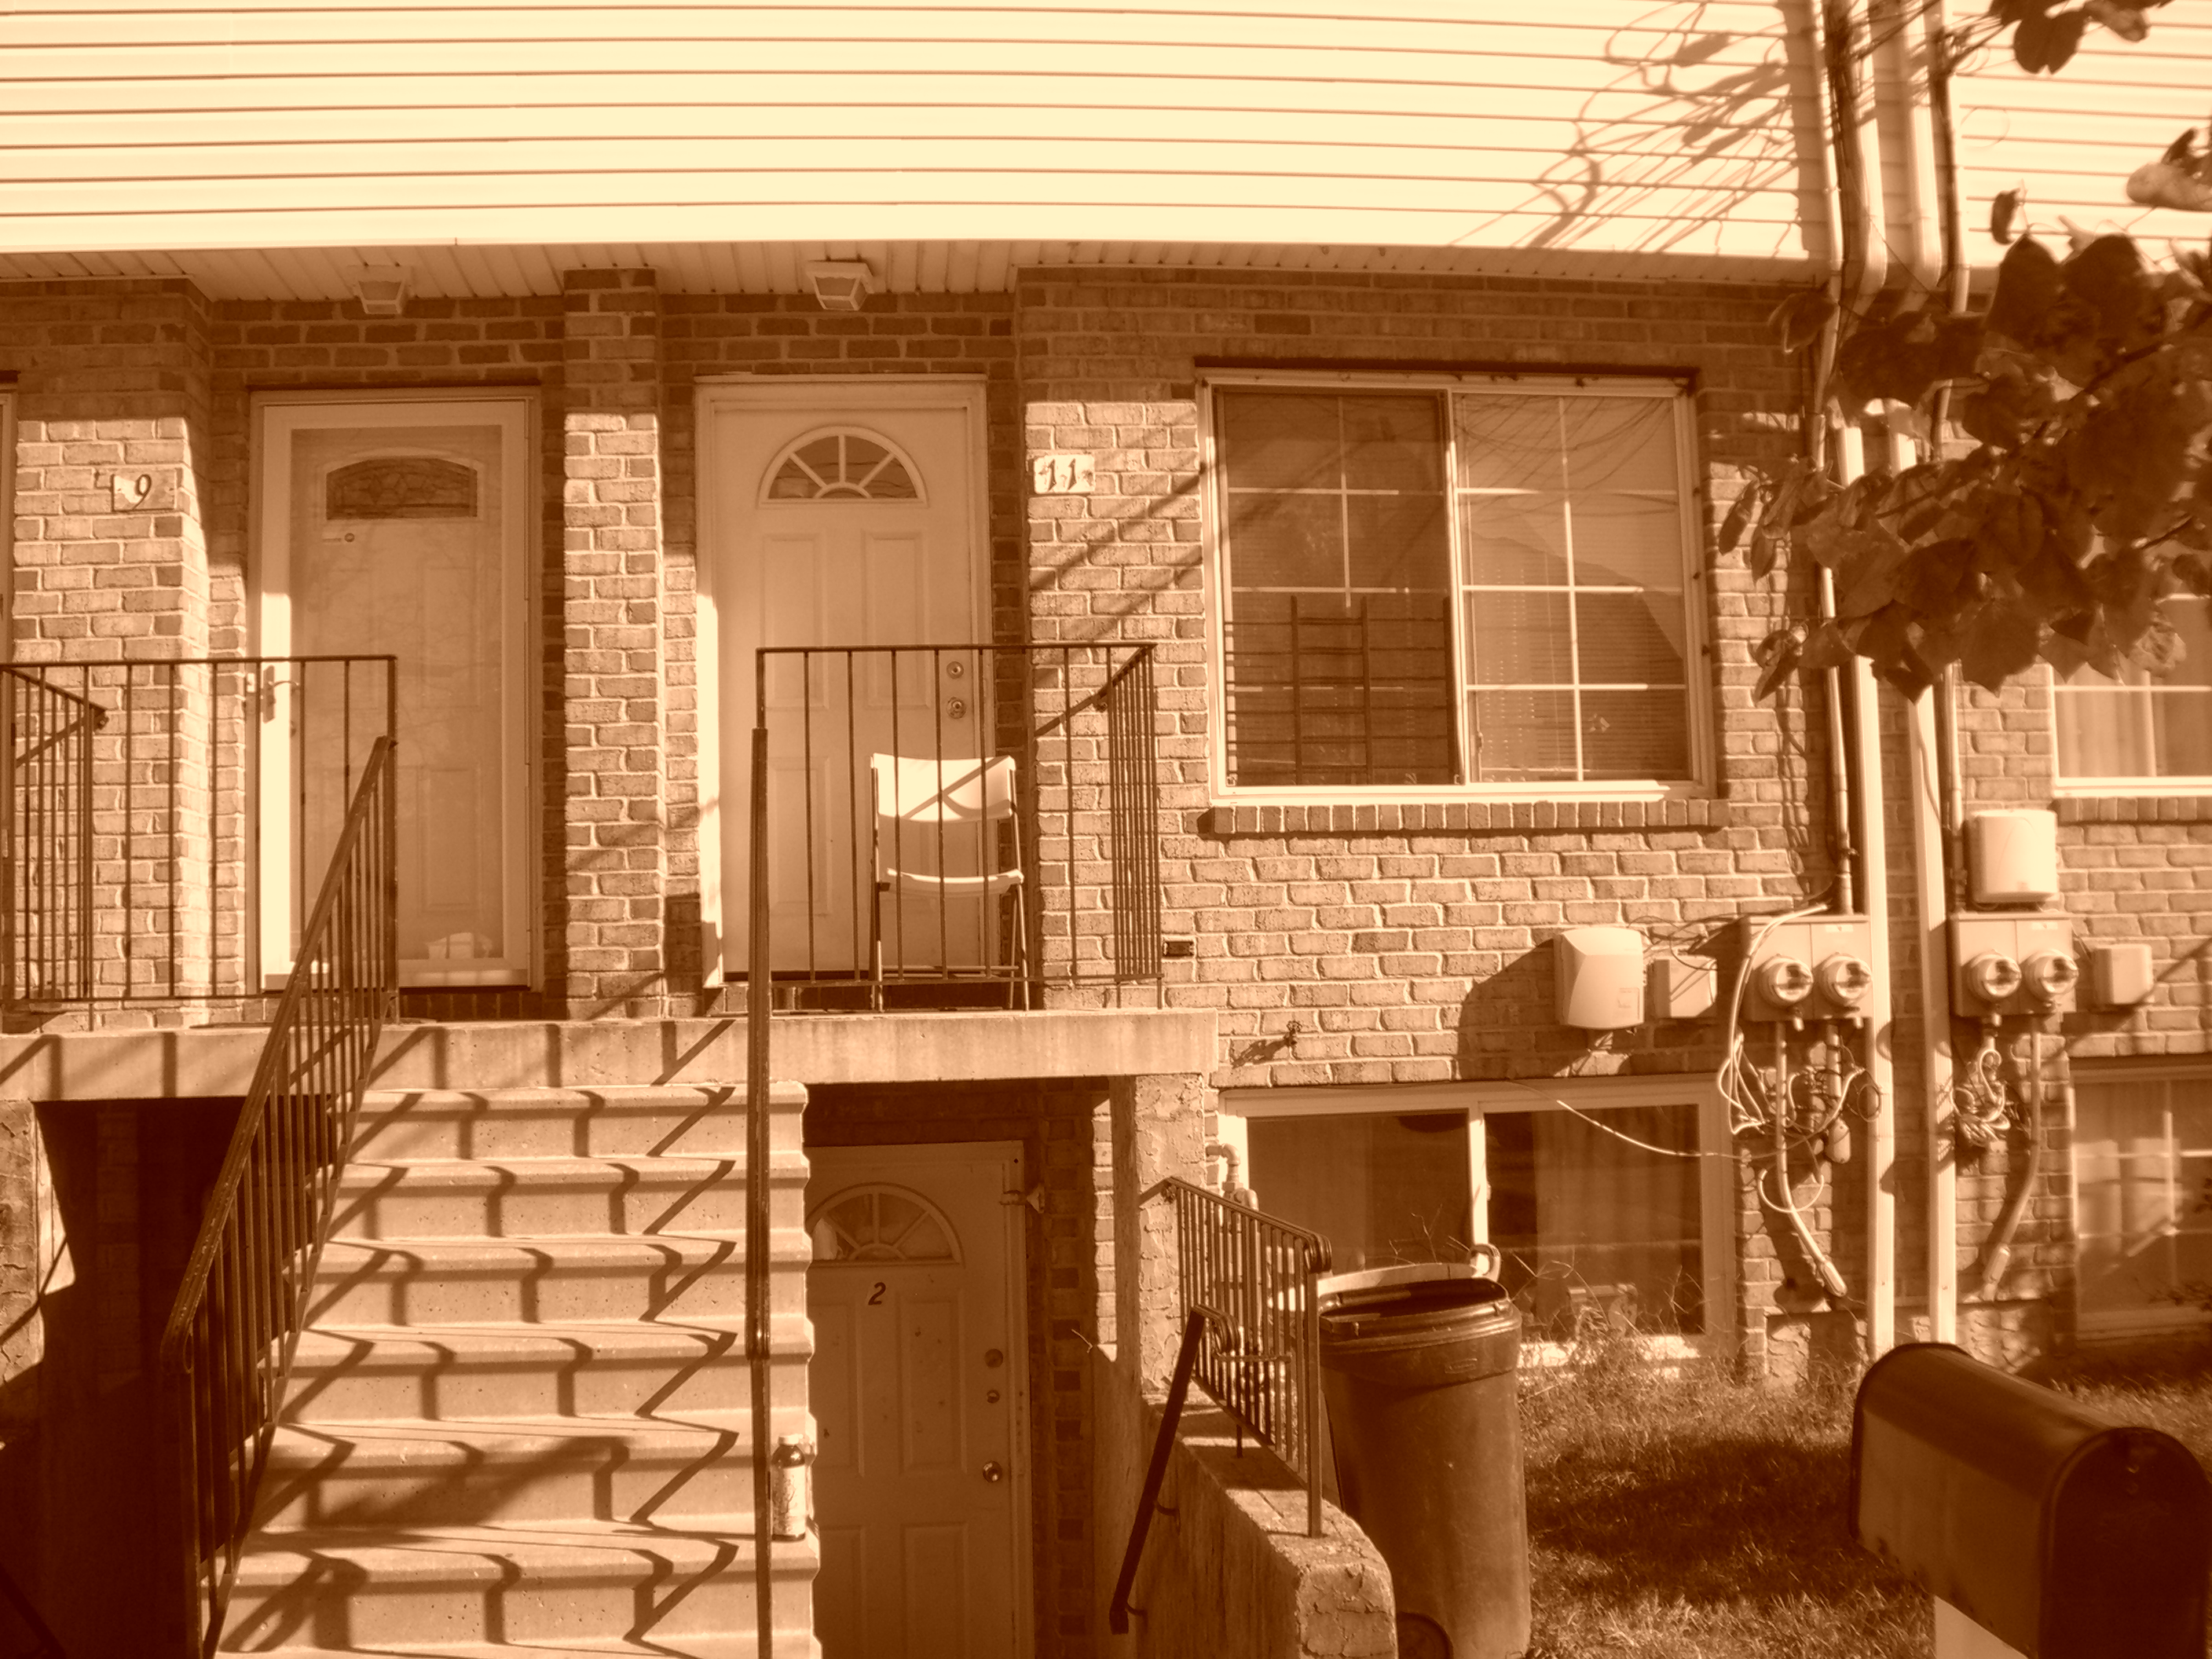 2 Family attached townhouse-Occupied but will deliver vacant.